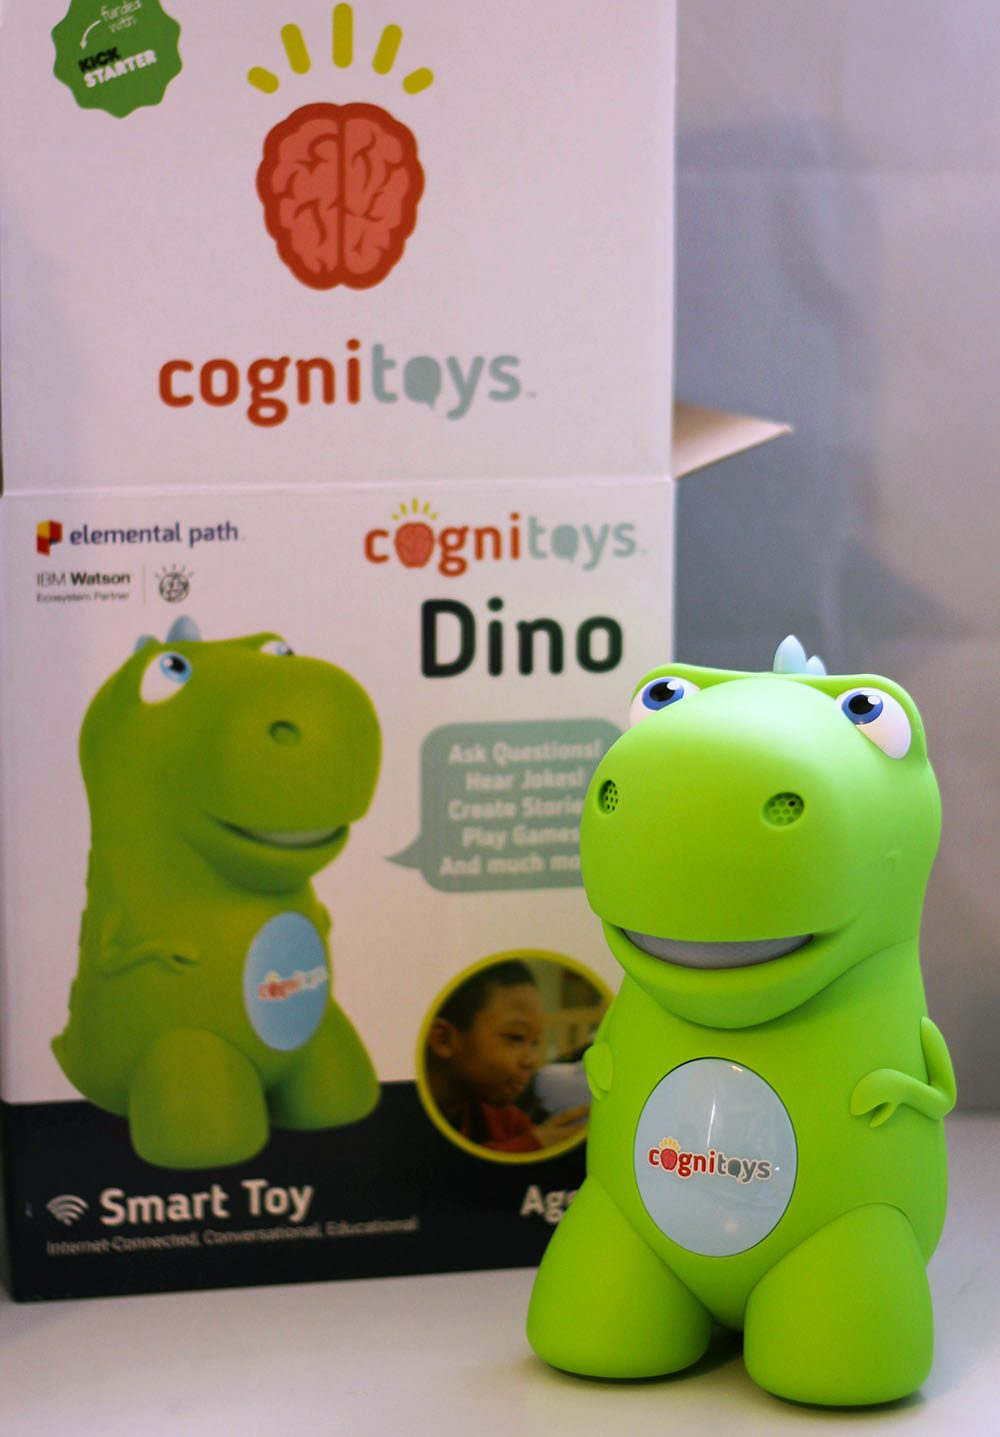 CogniToys Dino interactive smart toy to teach, entertain, and interact with kids